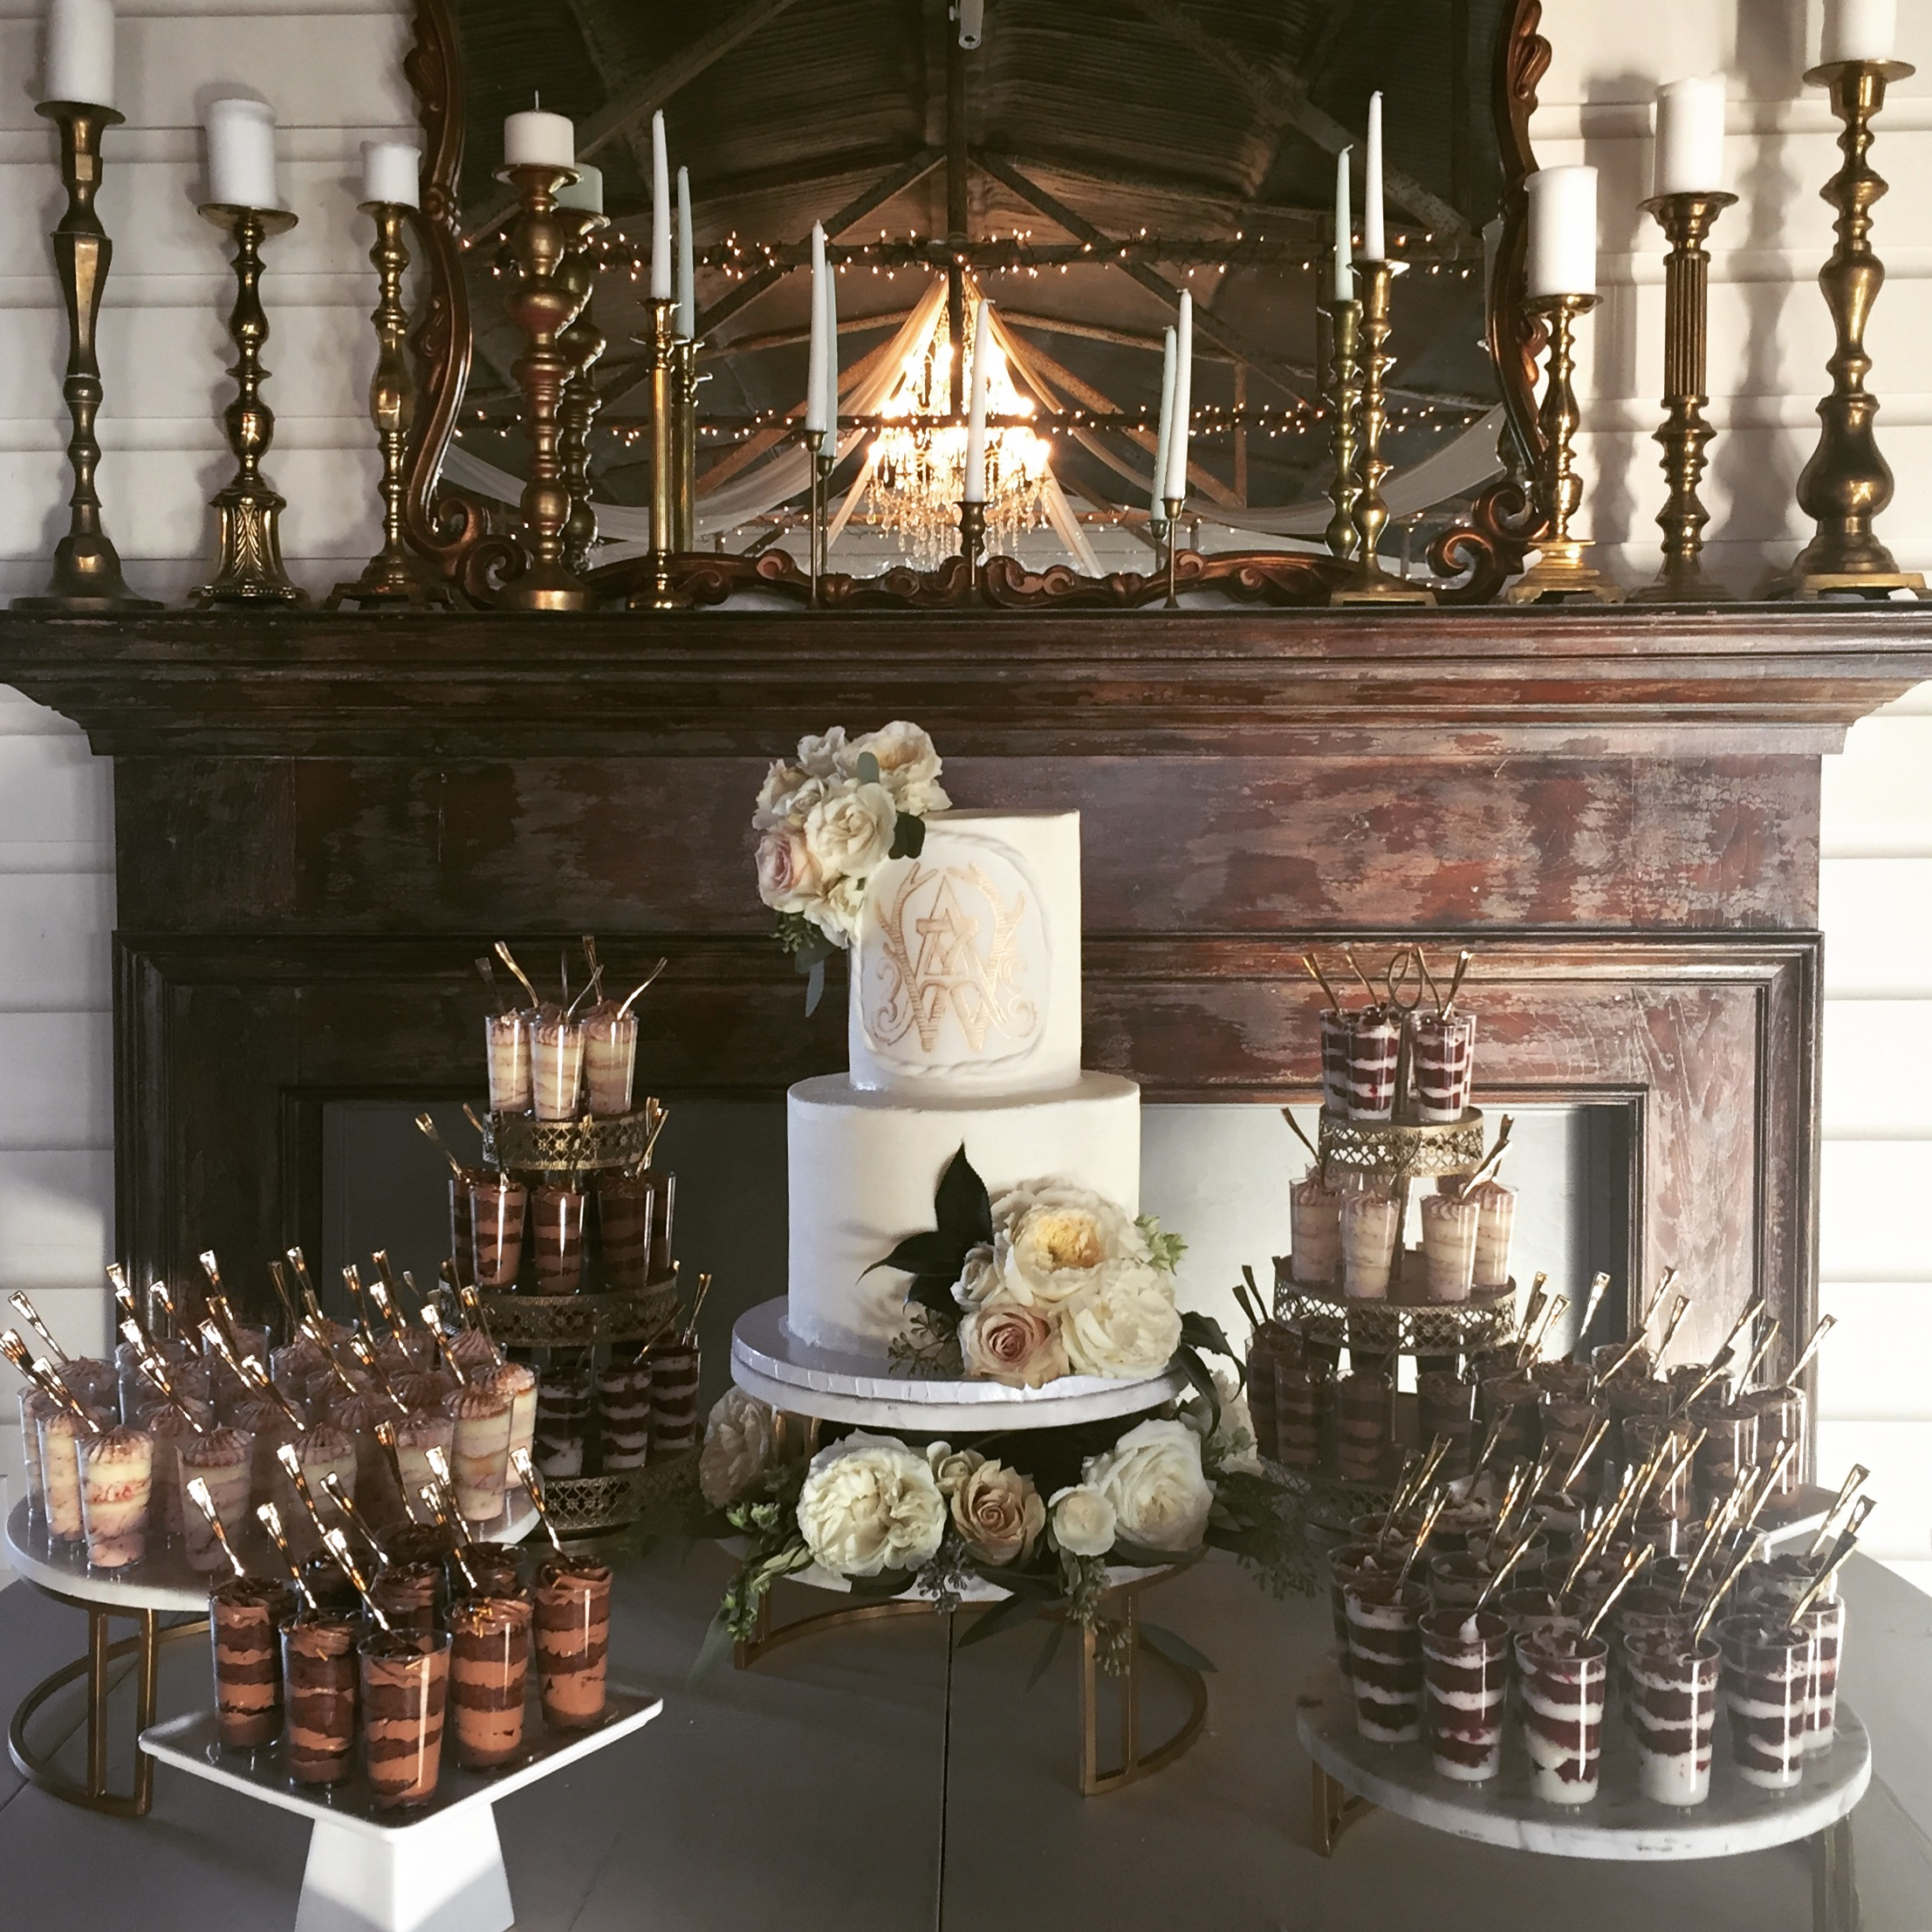 Dallas Fort Worth Bakery Weddings Events Birthdays Showers Cake Desserts